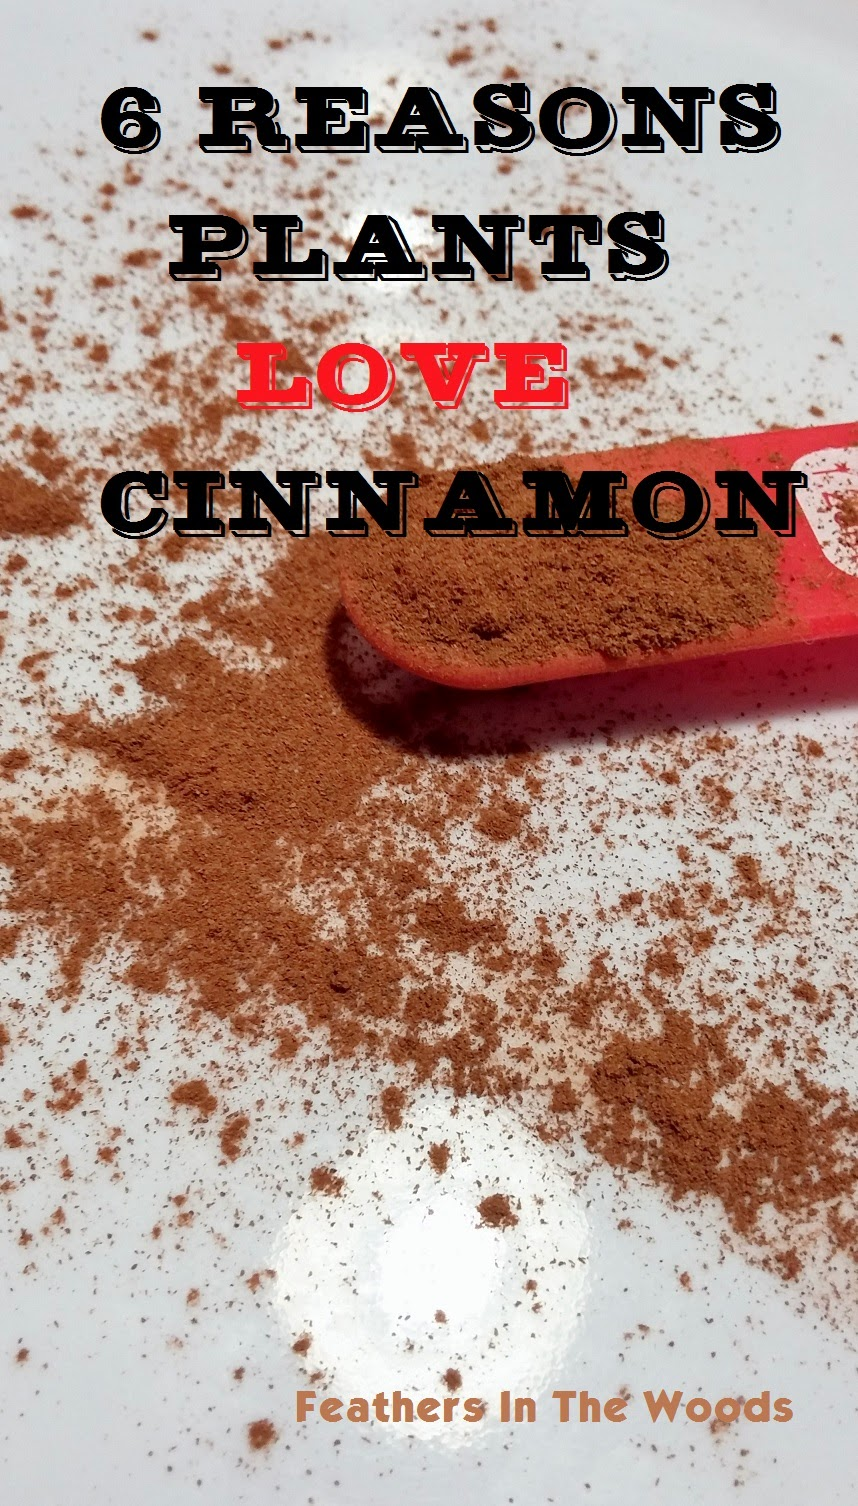 6 reasons plants love cinnamon